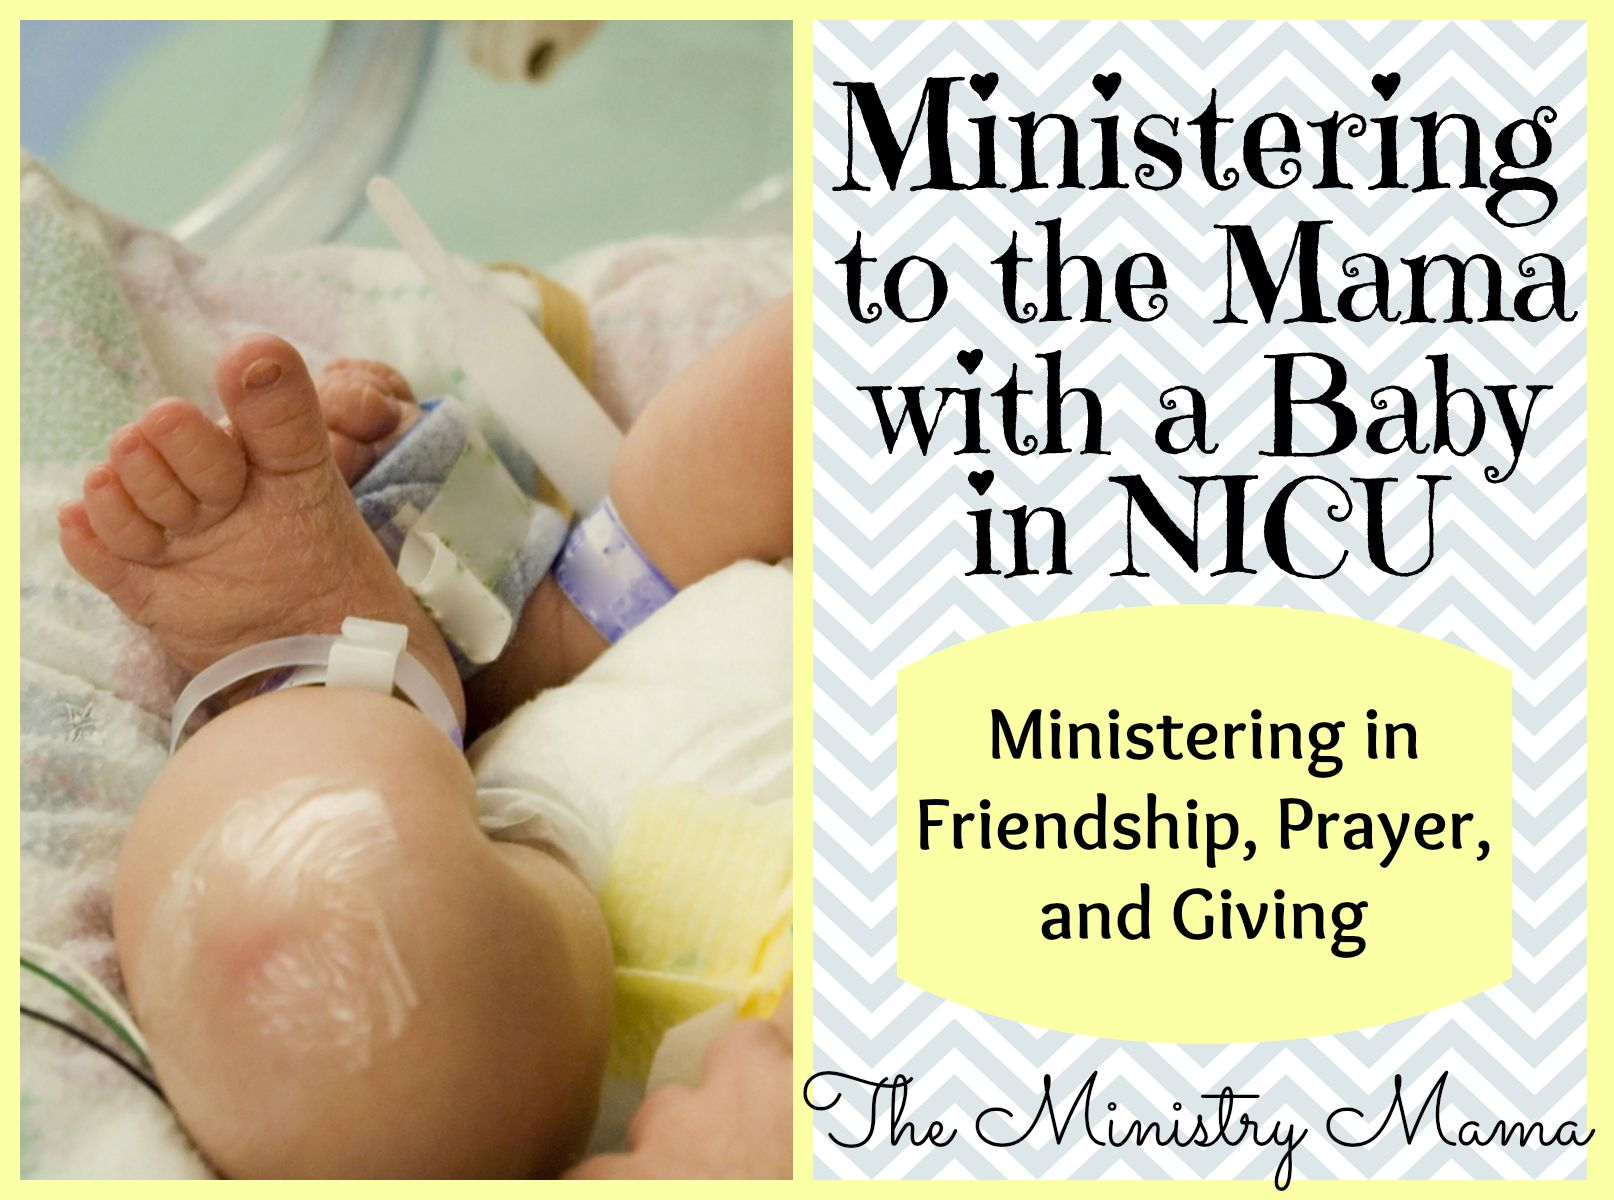 Ministering to the Mama with a Baby in NICU – The Ministry Mama